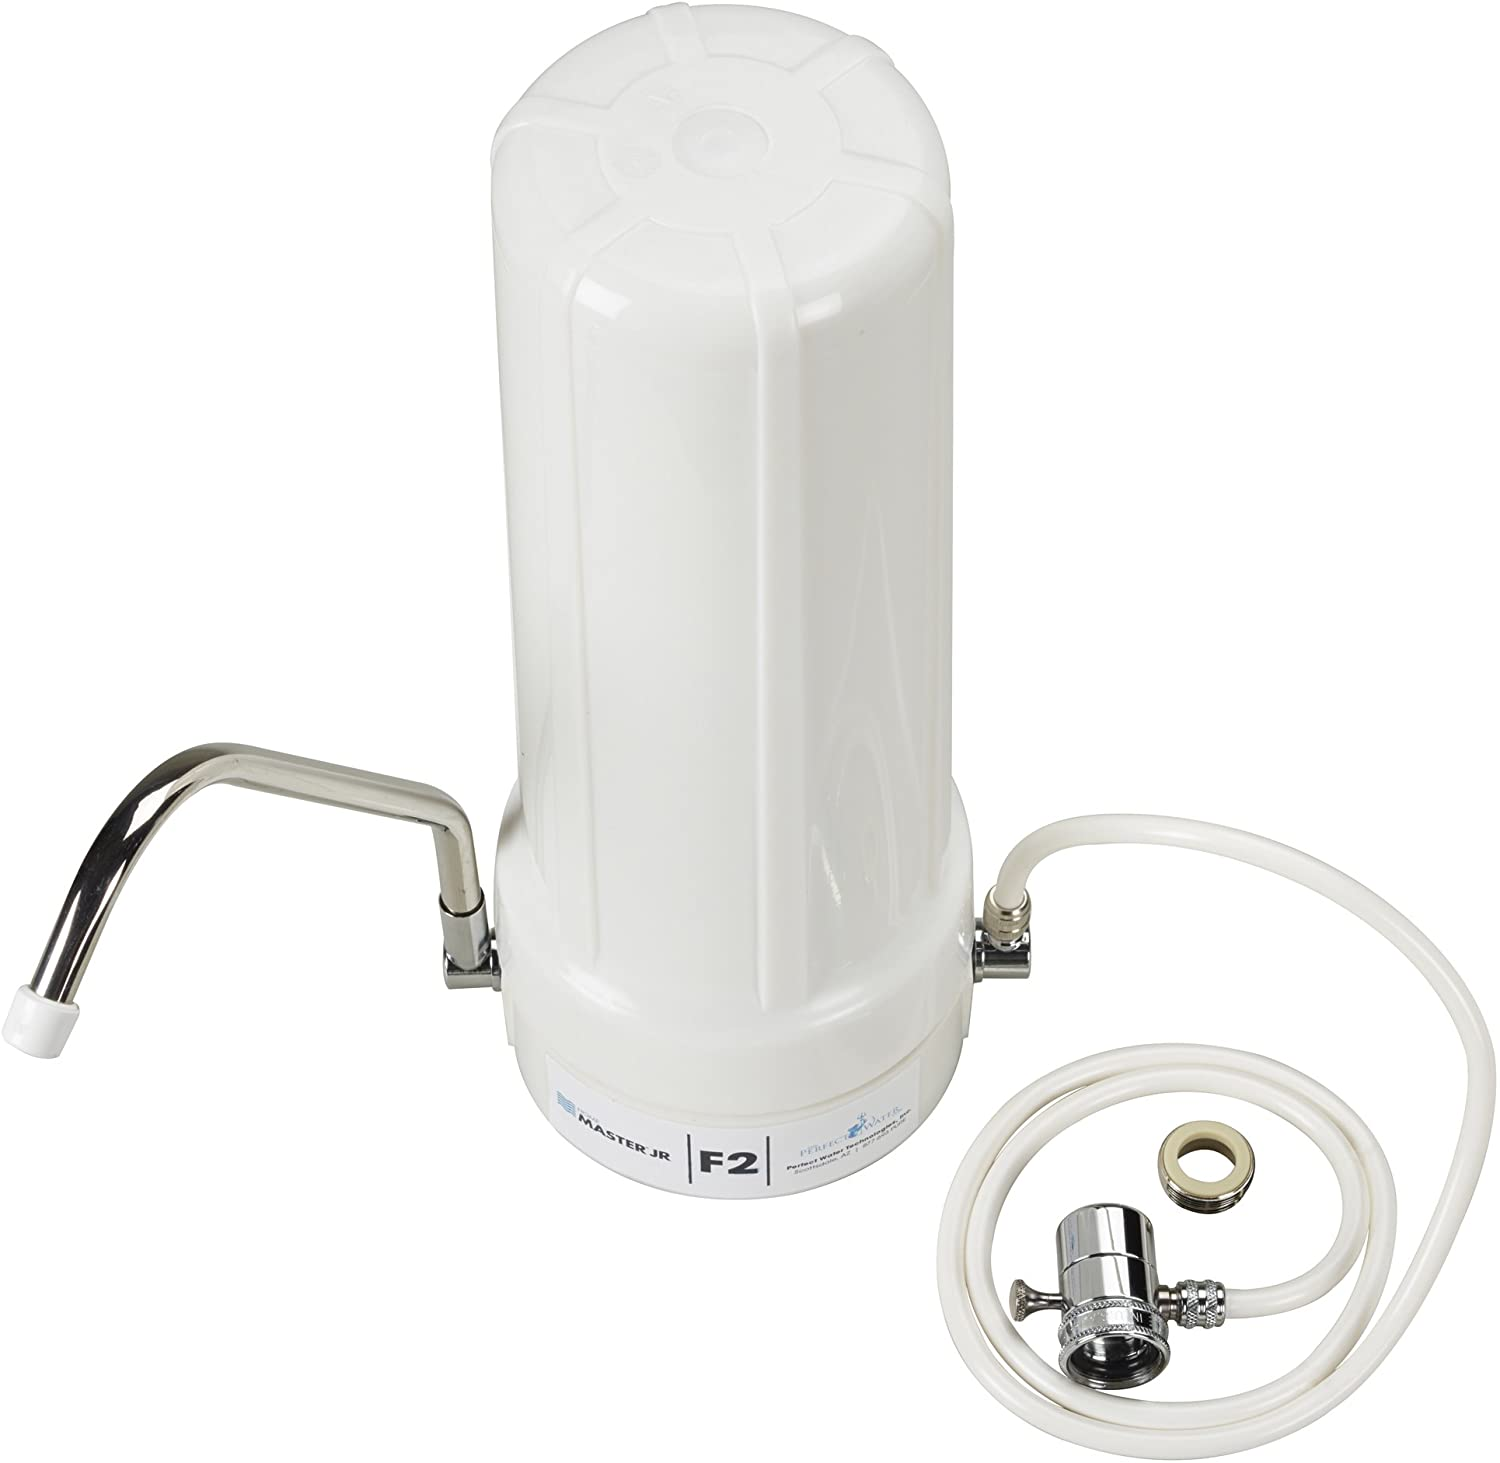 Home Master Jr F2 Countertop Water Filter